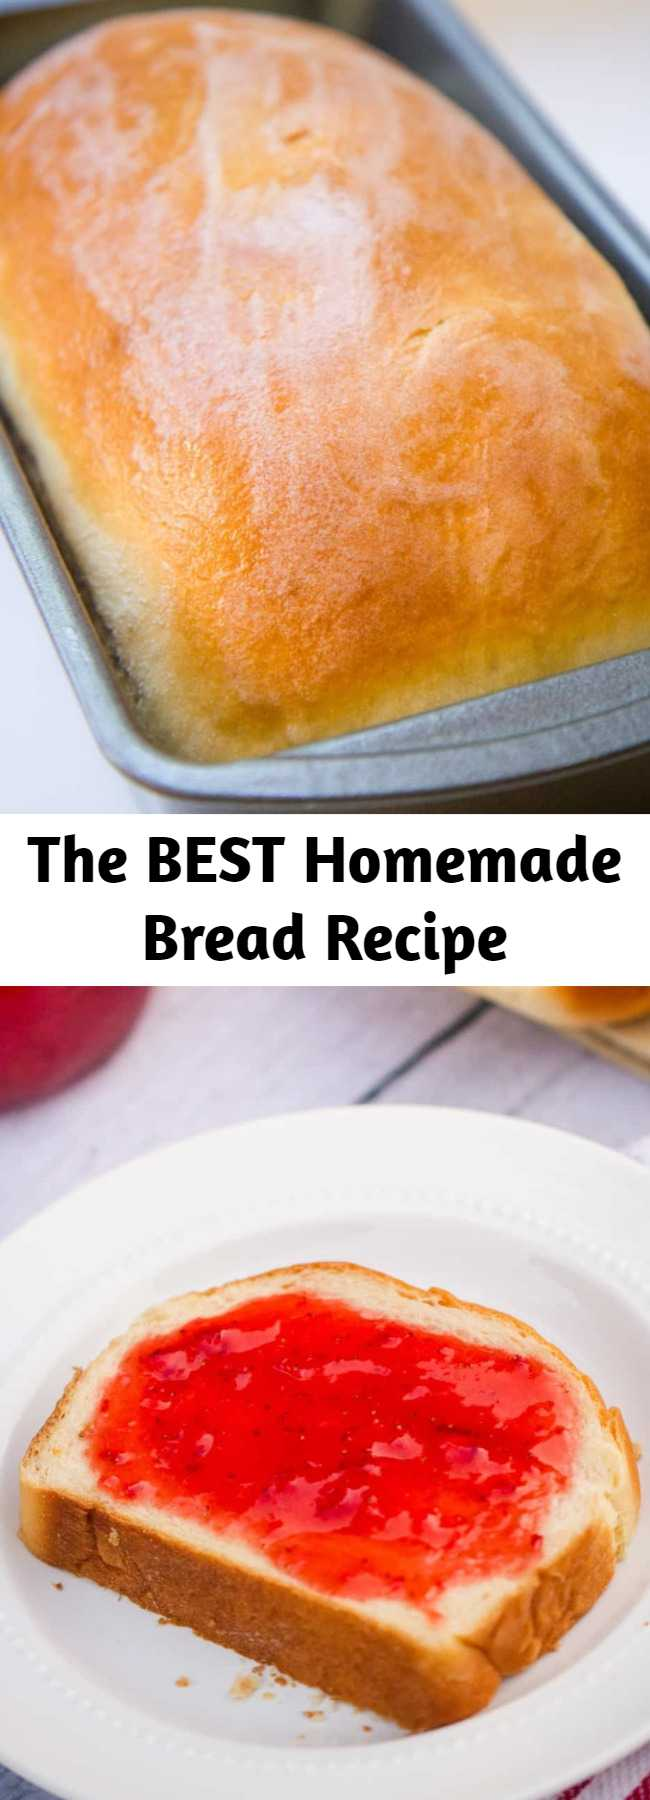 The BEST Homemade Bread Recipe - Delicious homemade bread - The BEST bread recipe that's super soft and has the perfect touch of sweetness. Top it with fresh homemade jam for the ultimate treat. There's nothing better than a slice of homemade bread! #bread #homemade #recipes #best #loaf